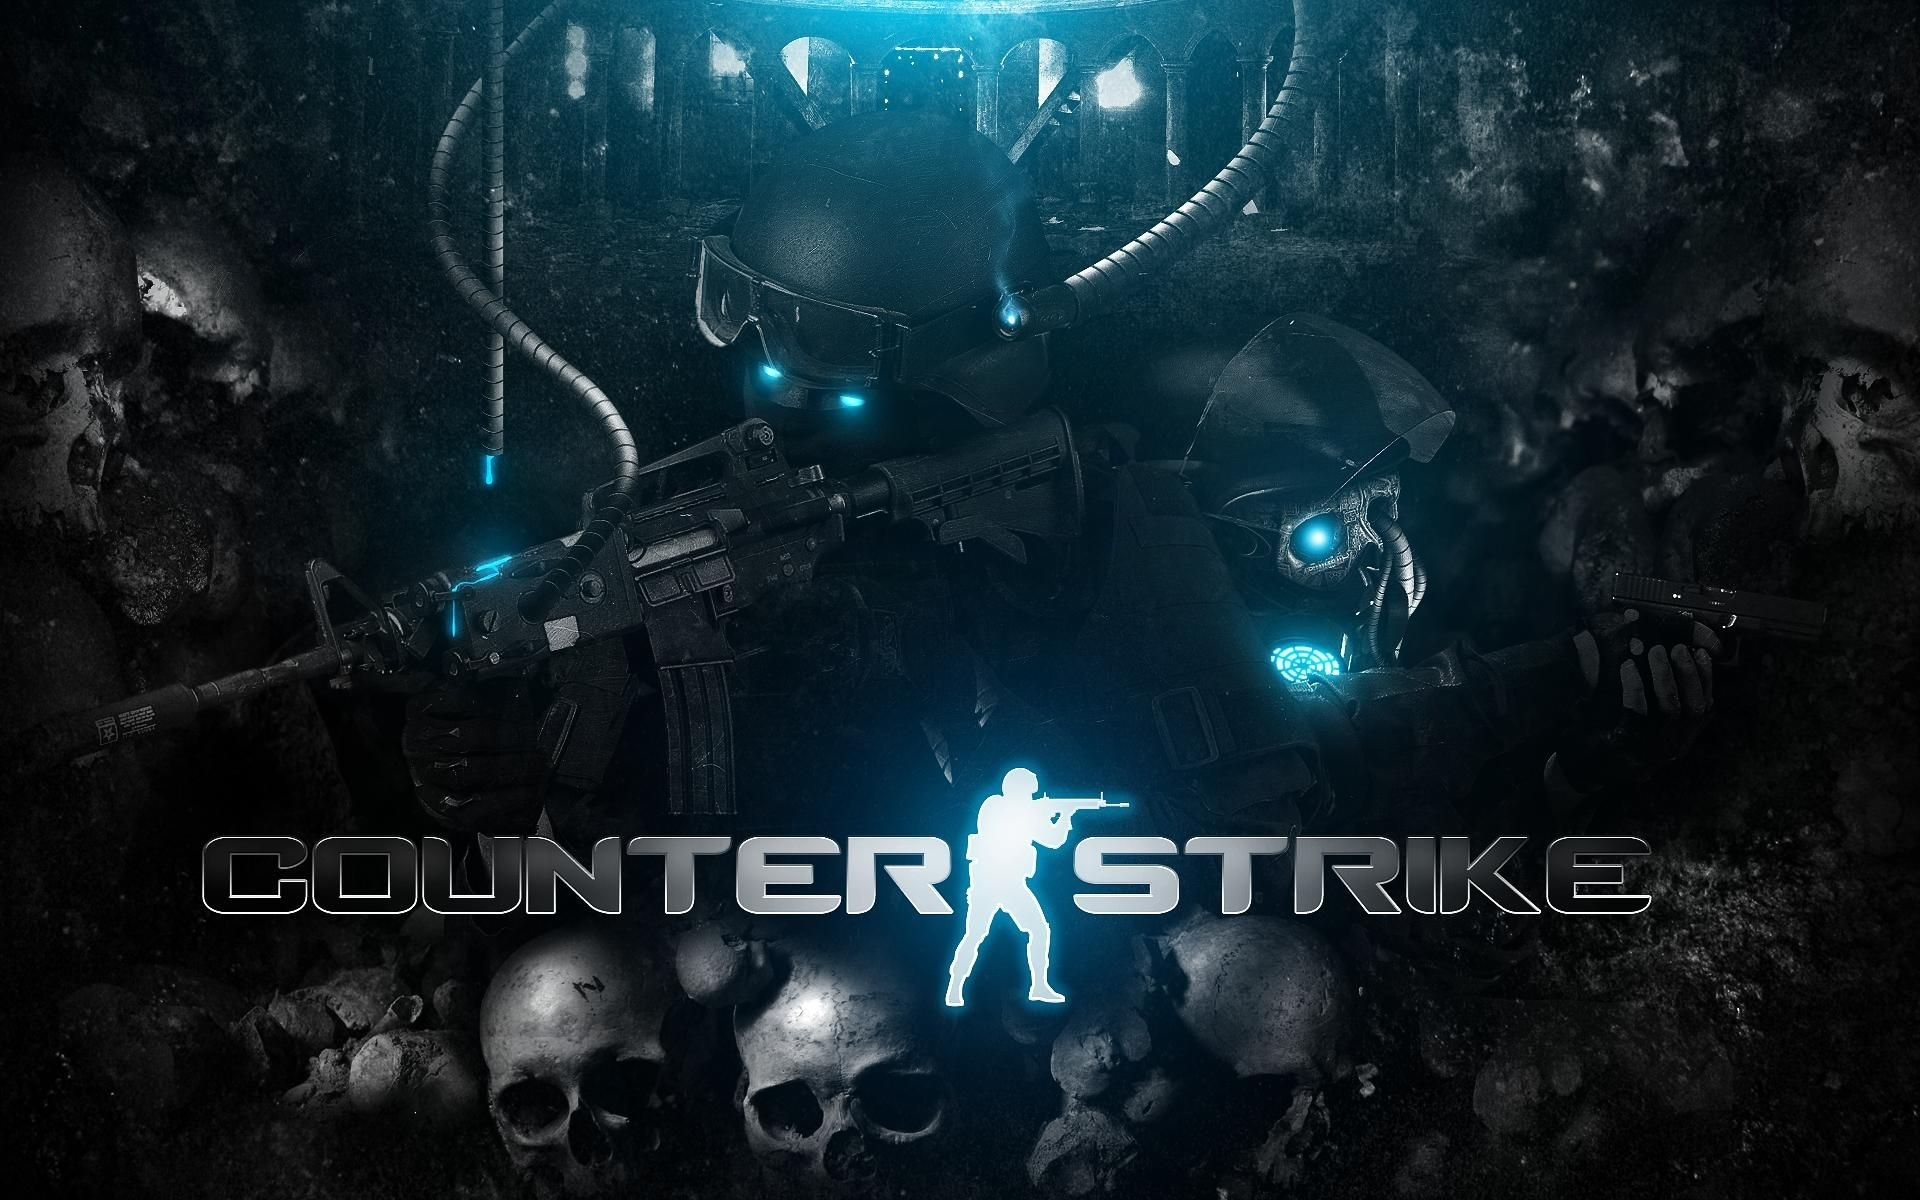 counter strike wallpapers - wallpaper cave   free wallpapers